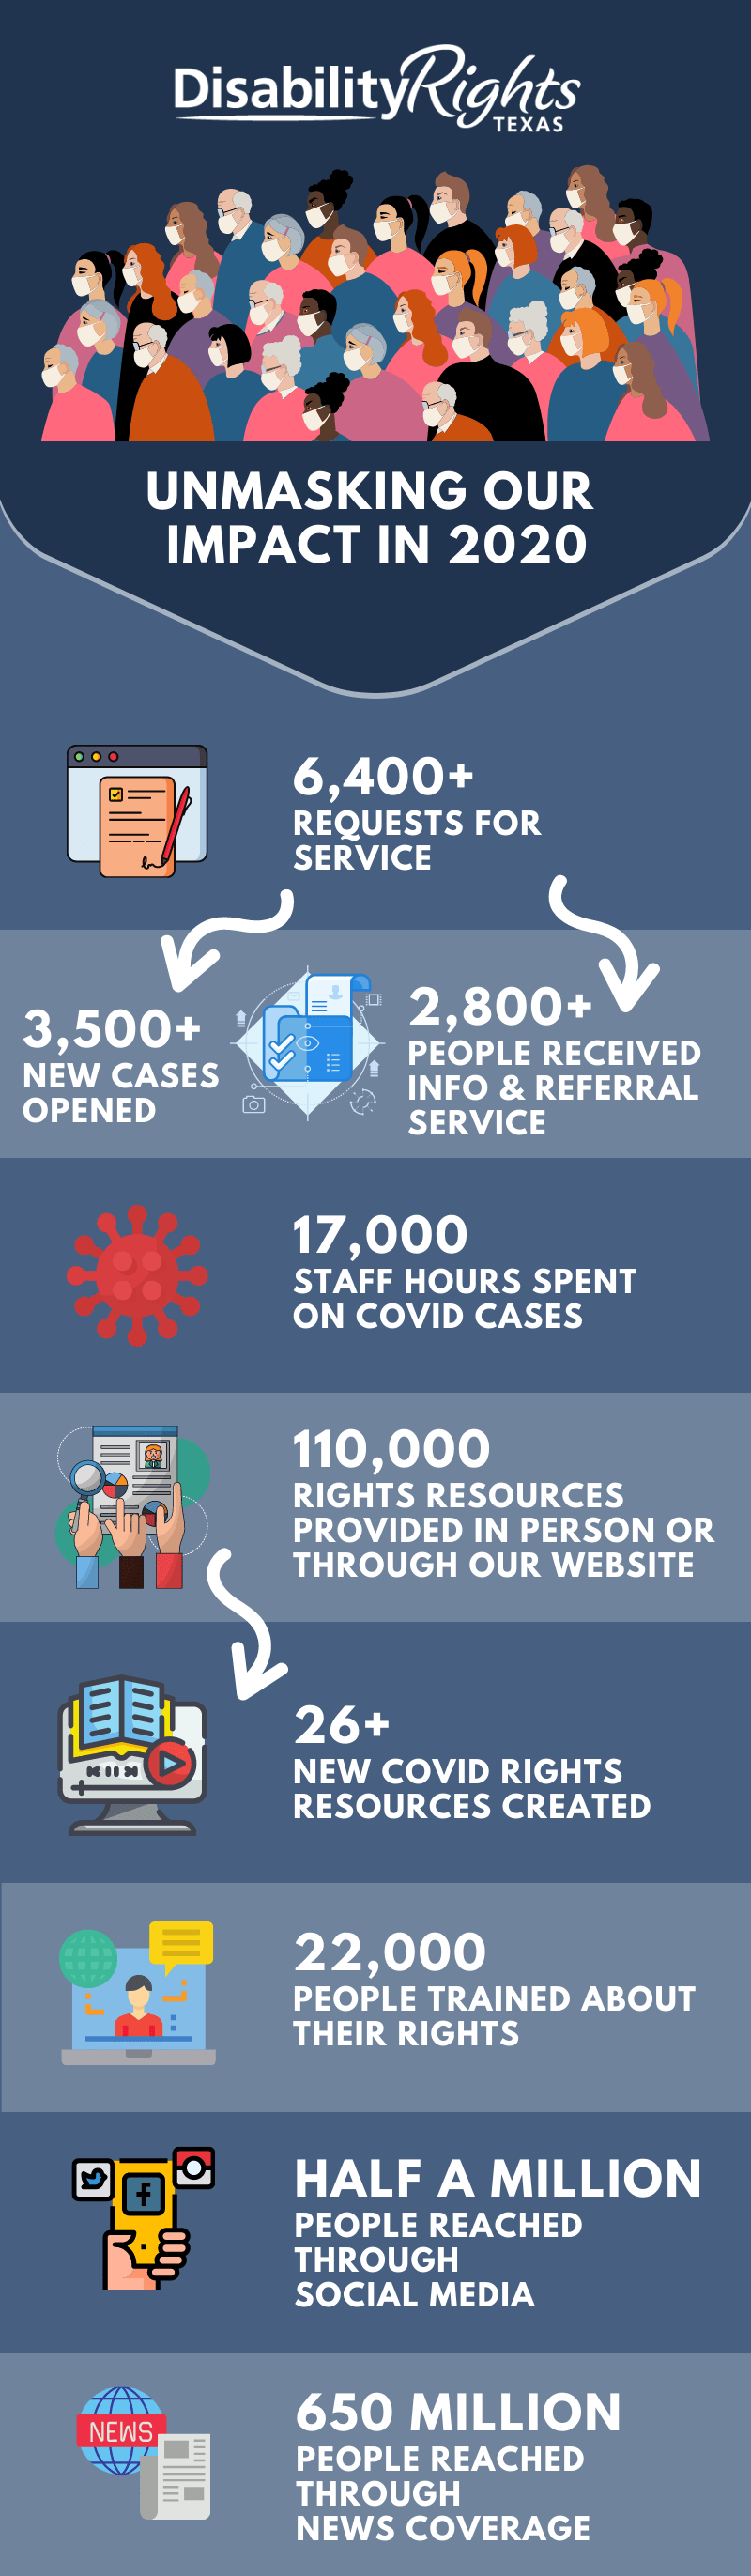 infographic of our impact in 2020, details in content next to iamge